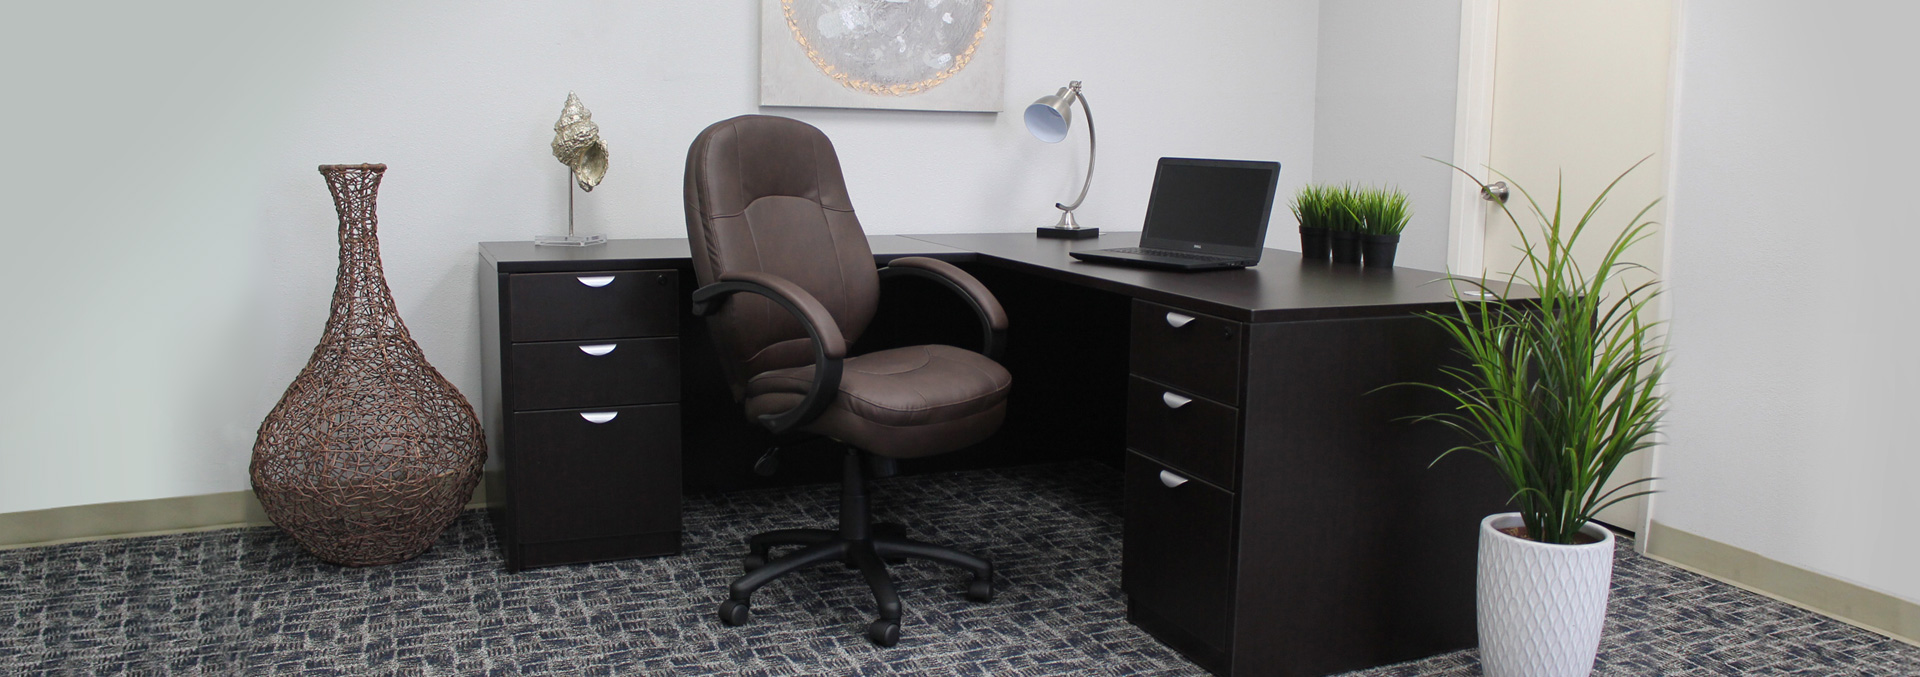 desk chair york leather cigar bosschair a norstar company